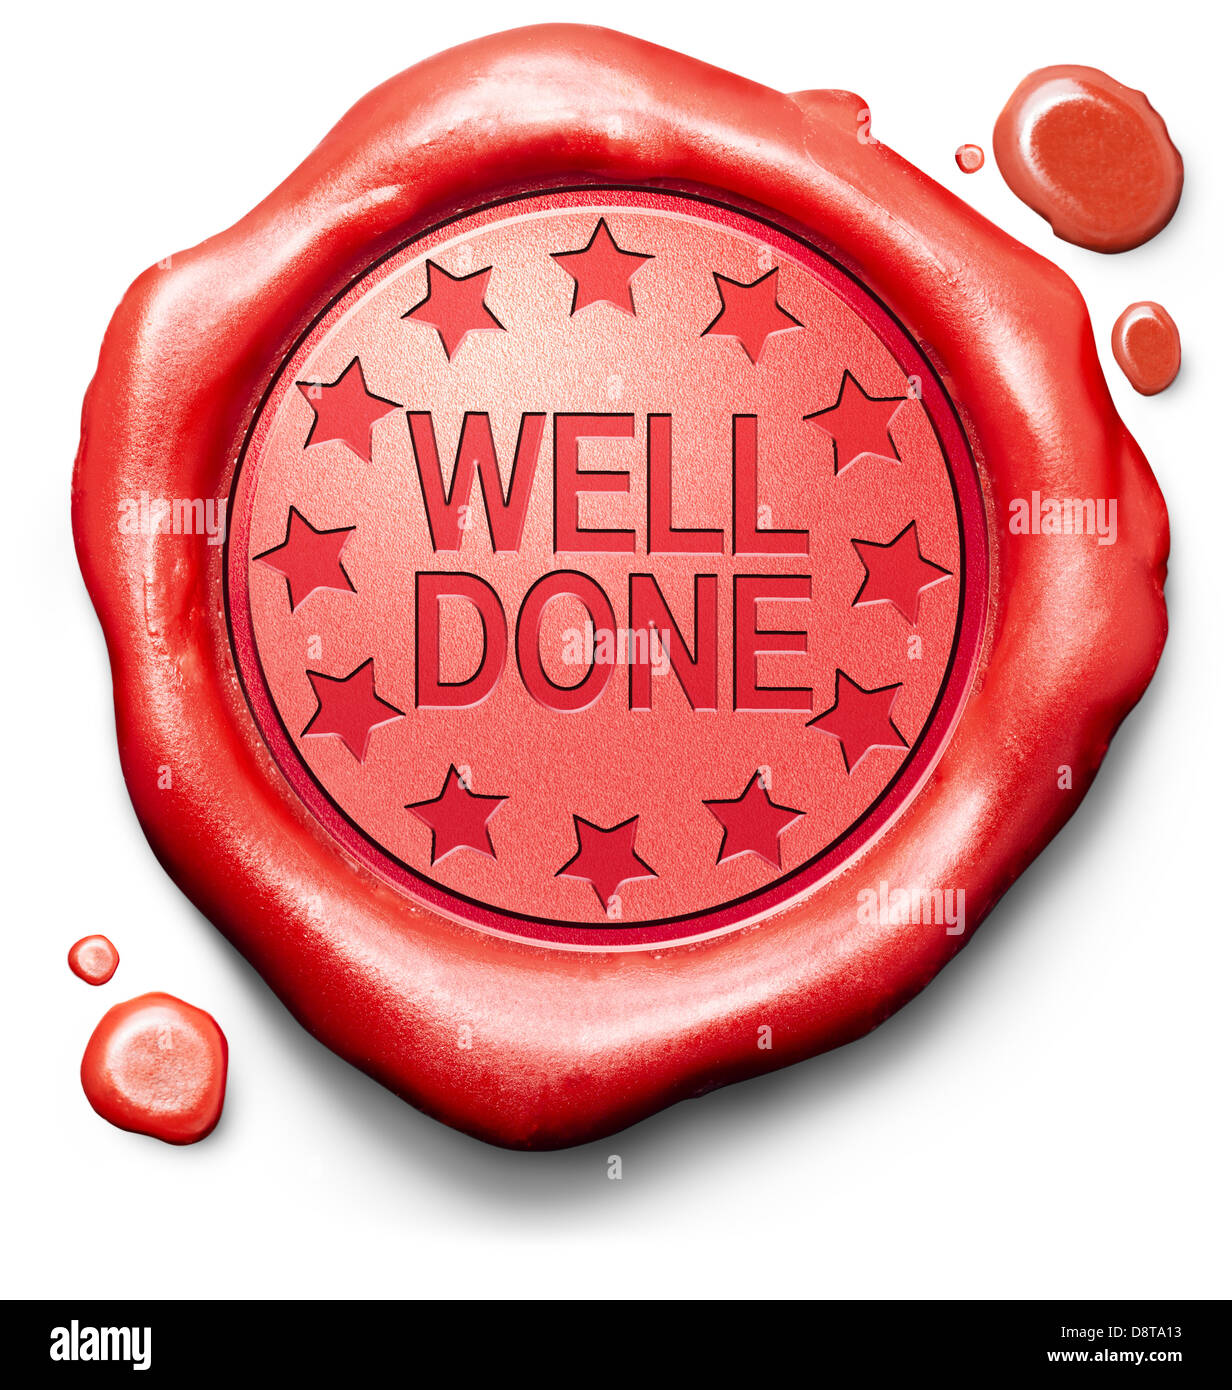 well done good job excellent performance great achievement thank stock photo well done good job excellent performance great achievement thank you red icon stamp button or label